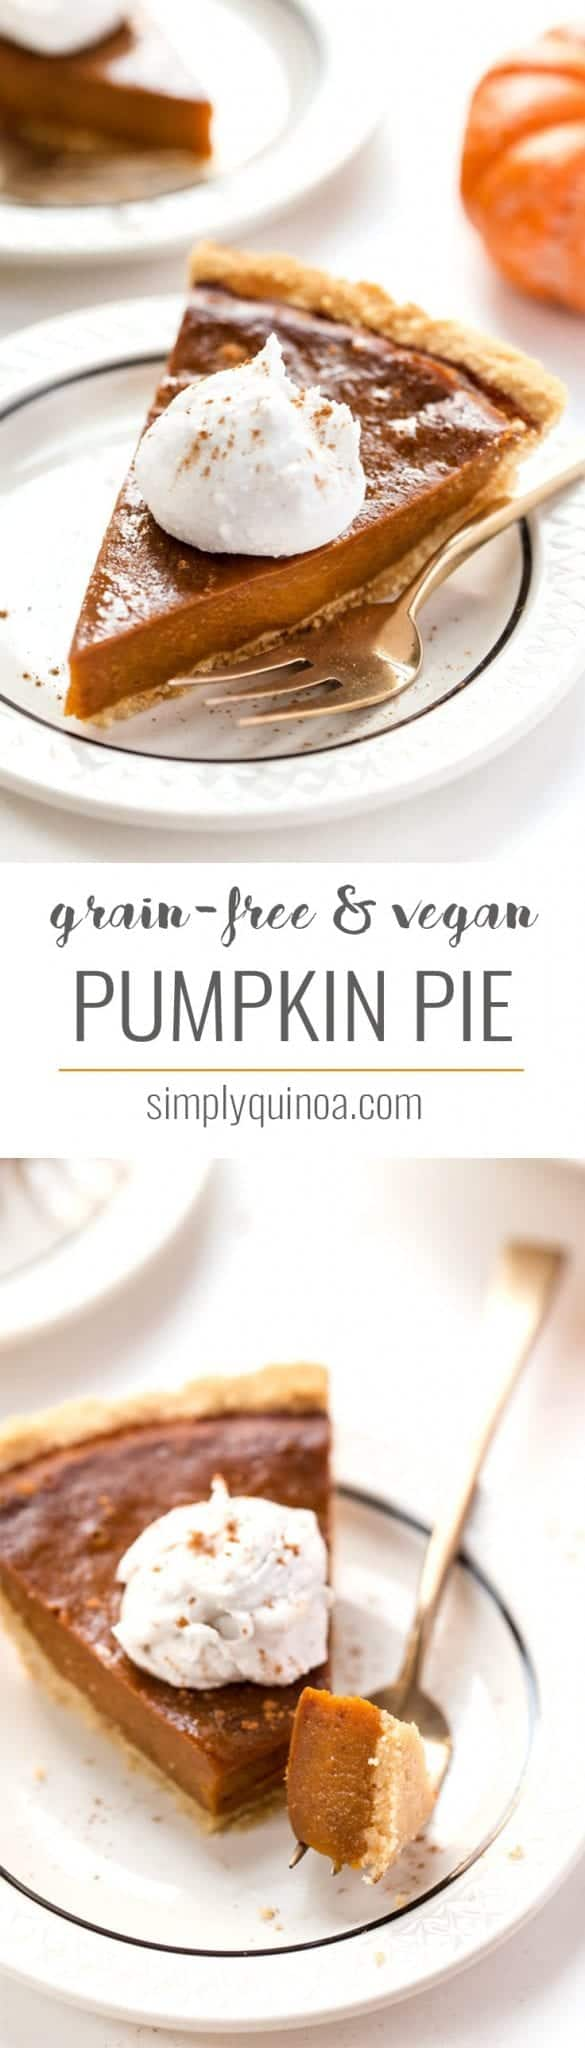 Grain-Free & Vegan Pumpkin Pie ???? made entirely in the food processor, with an almond flour pie crust and topped with coconut whip!